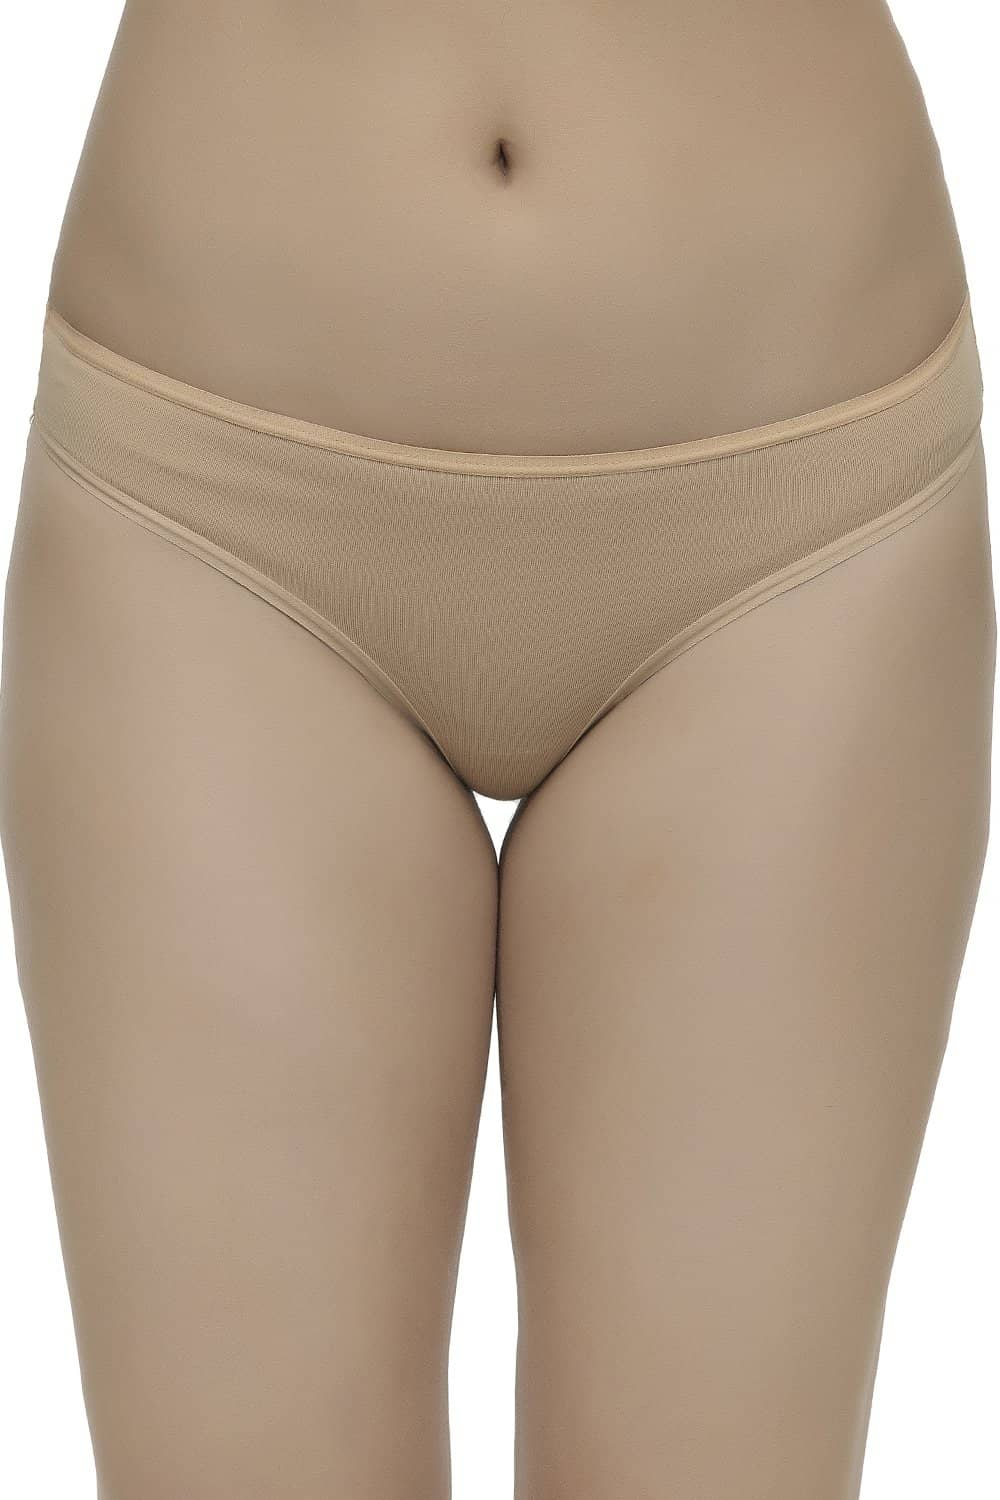 Inner Sense Organic Cotton Antimicrobial Thong